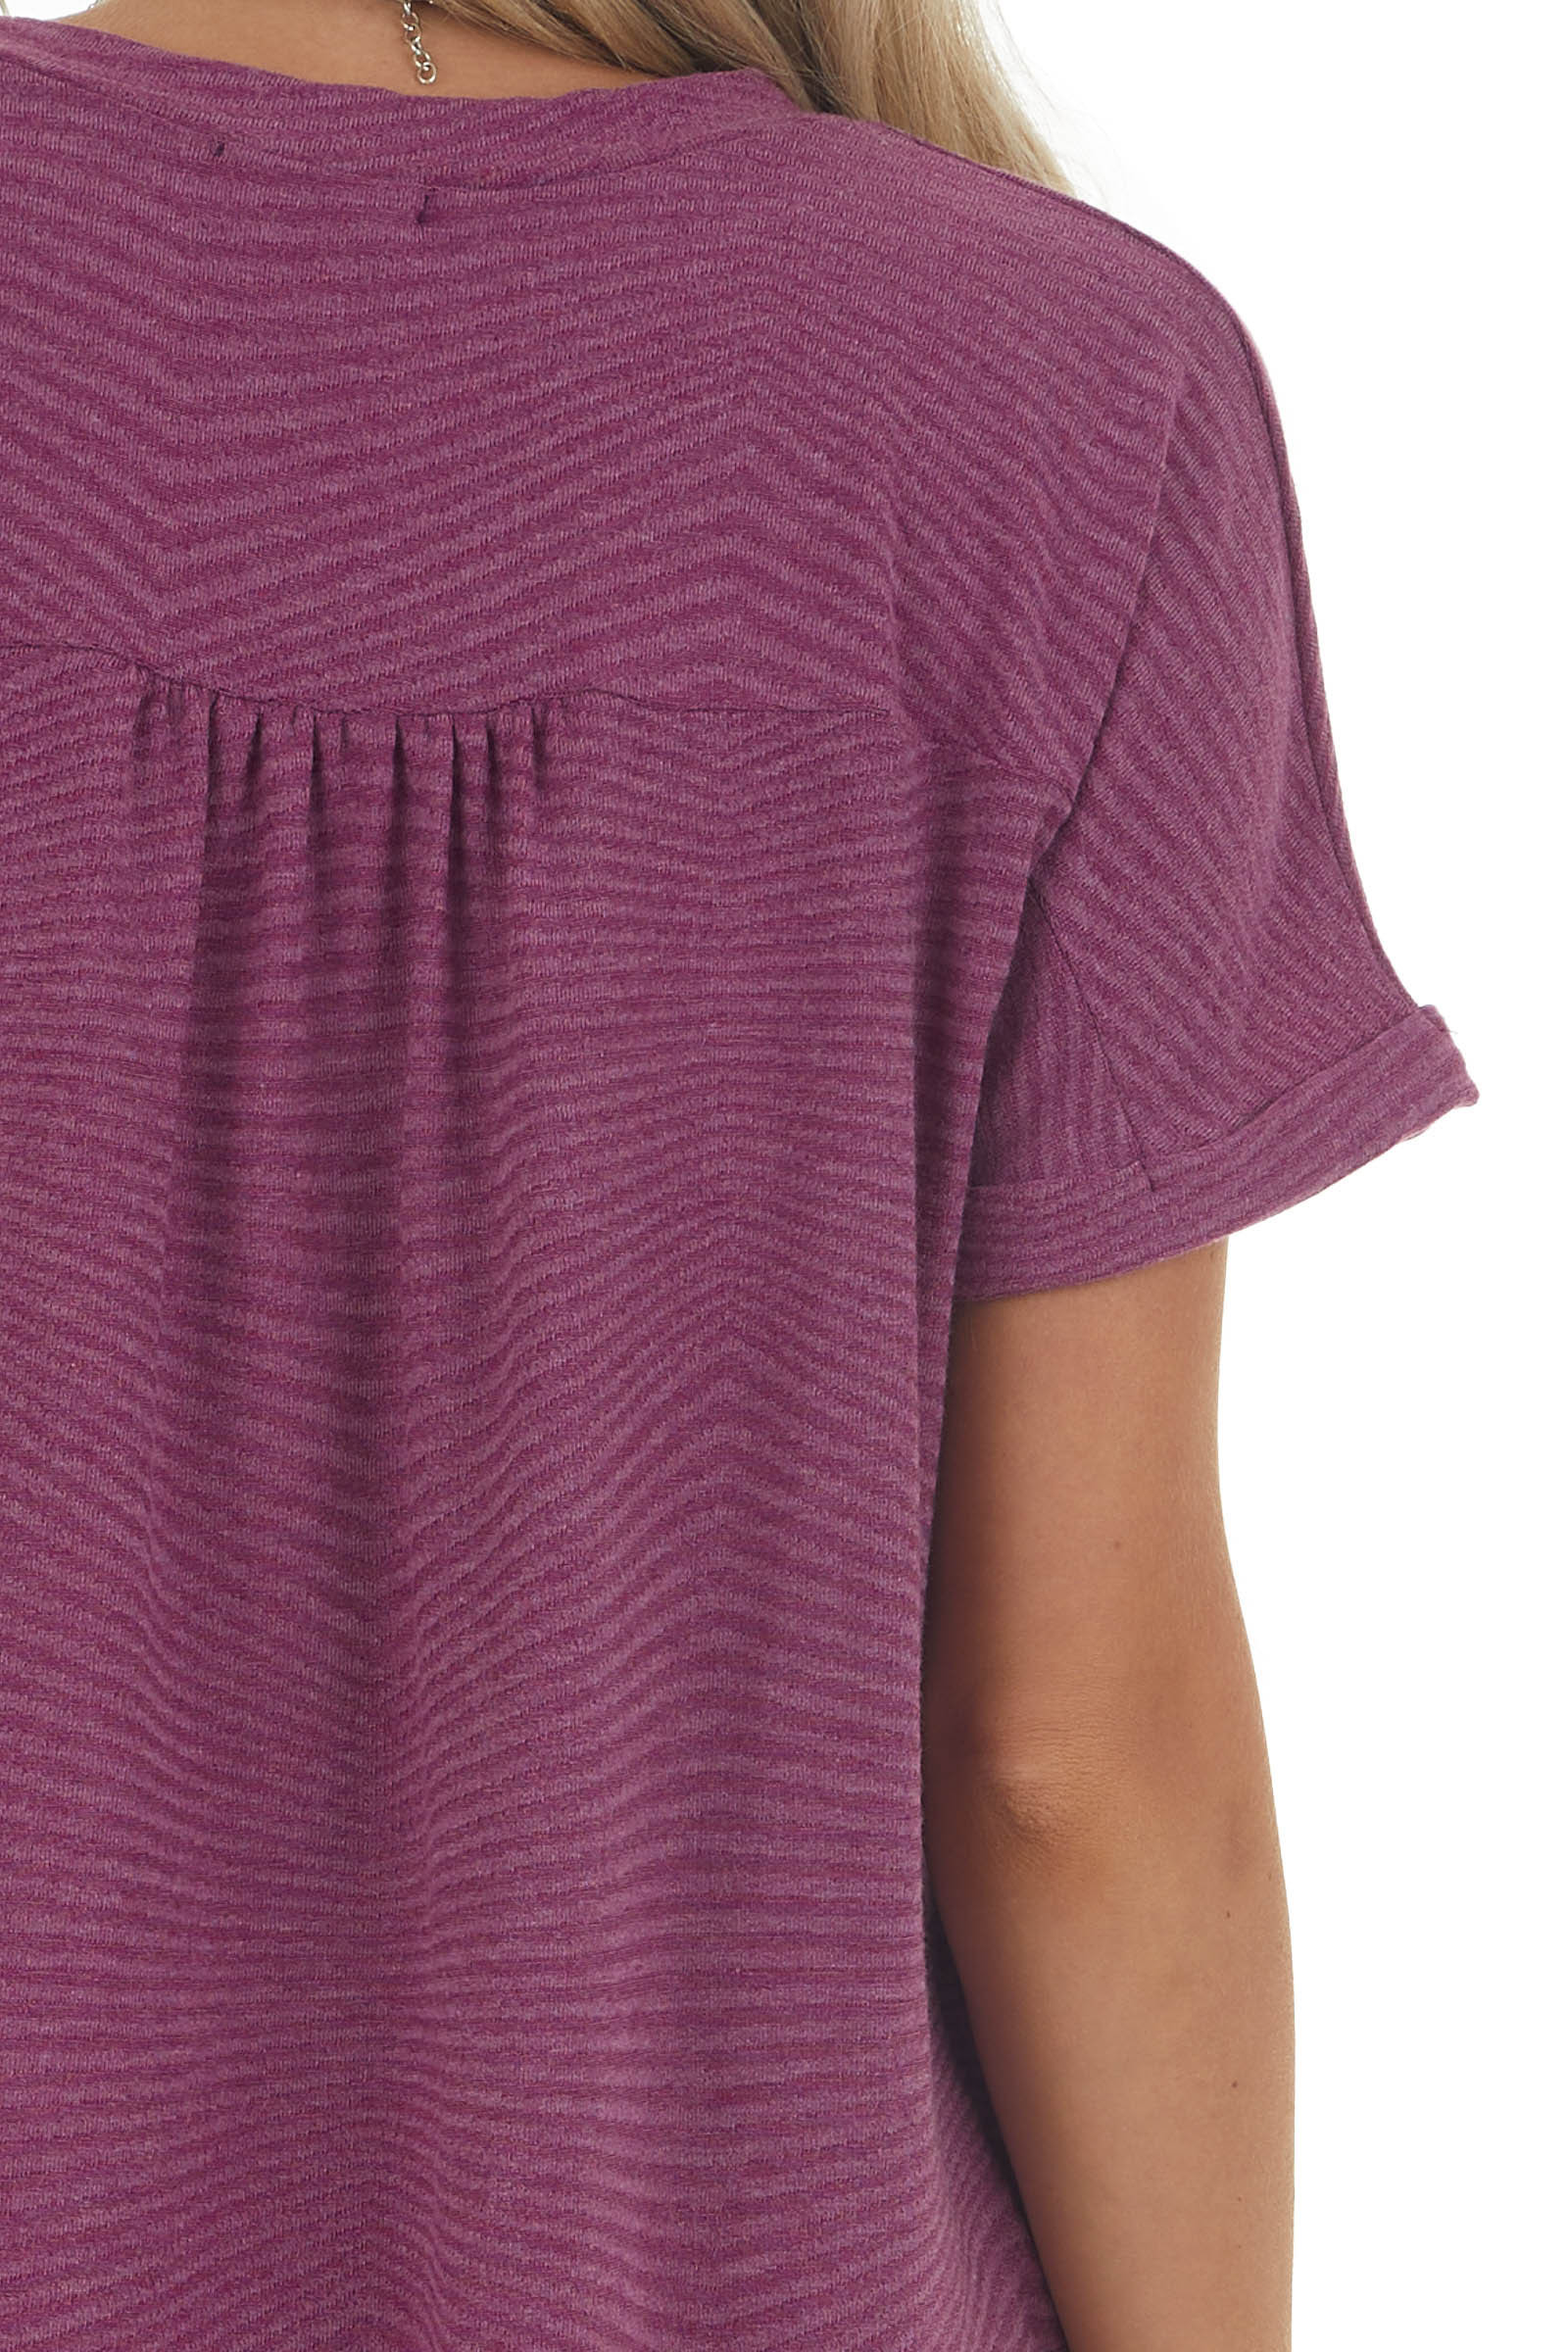 Plum Two Tone Striped Rolled Cuff Knit Top